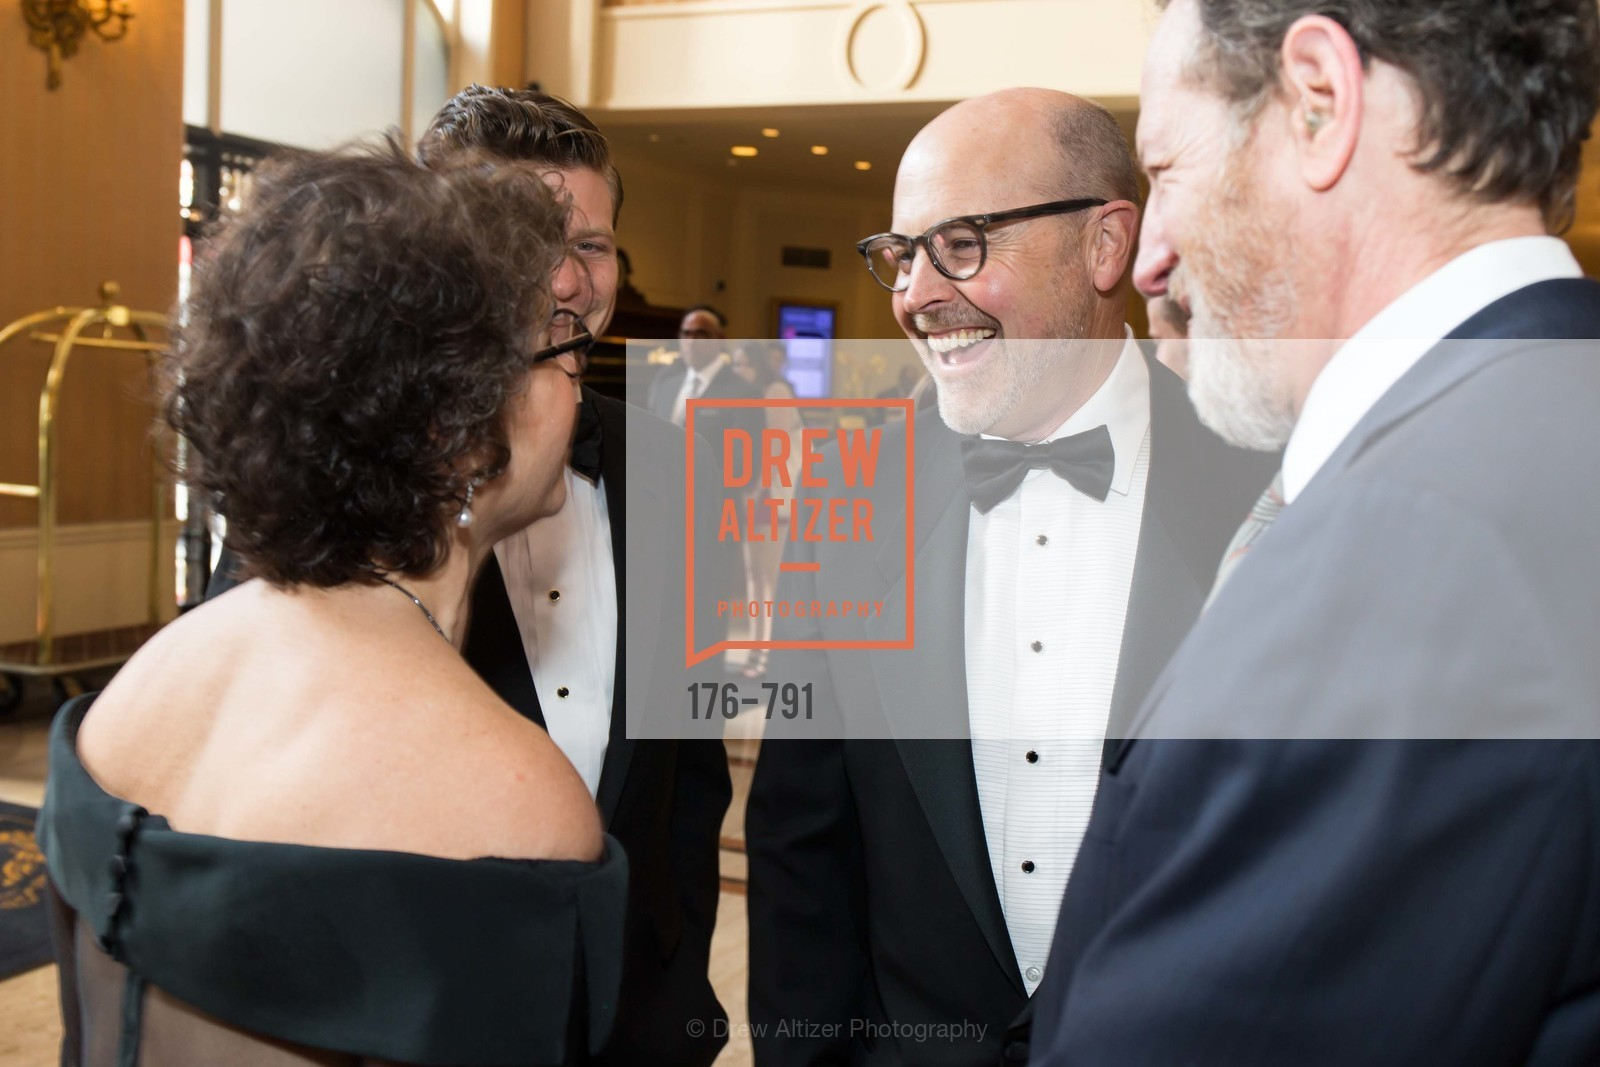 Linda Jo Fitz, Justin Greving, Chandler McCoy, SAN FRANCISCO HERITAGE Soiree 2015, US, April 19th, 2015,Drew Altizer, Drew Altizer Photography, full-service event agency, private events, San Francisco photographer, photographer California